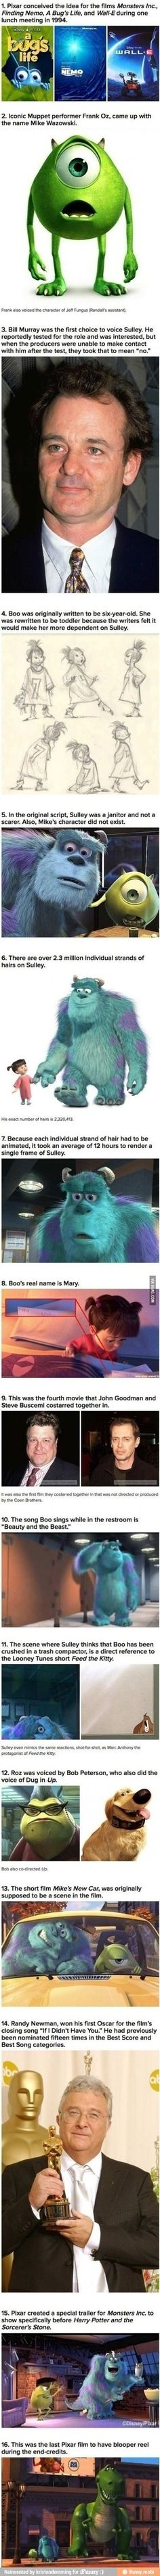 Some unknown facts about monsters inc.